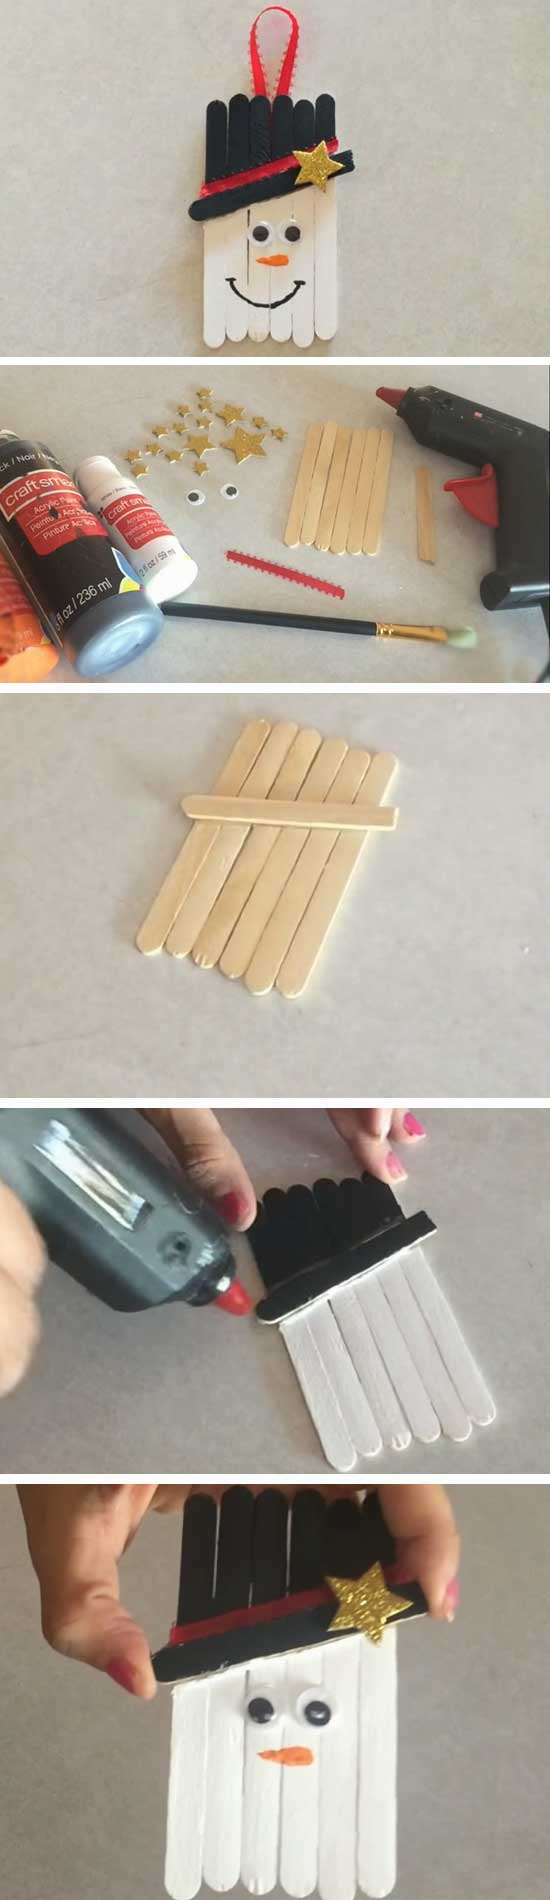 18 DIY Ideas and Tutorials to Recycle Popsicle Sticks for Christmas